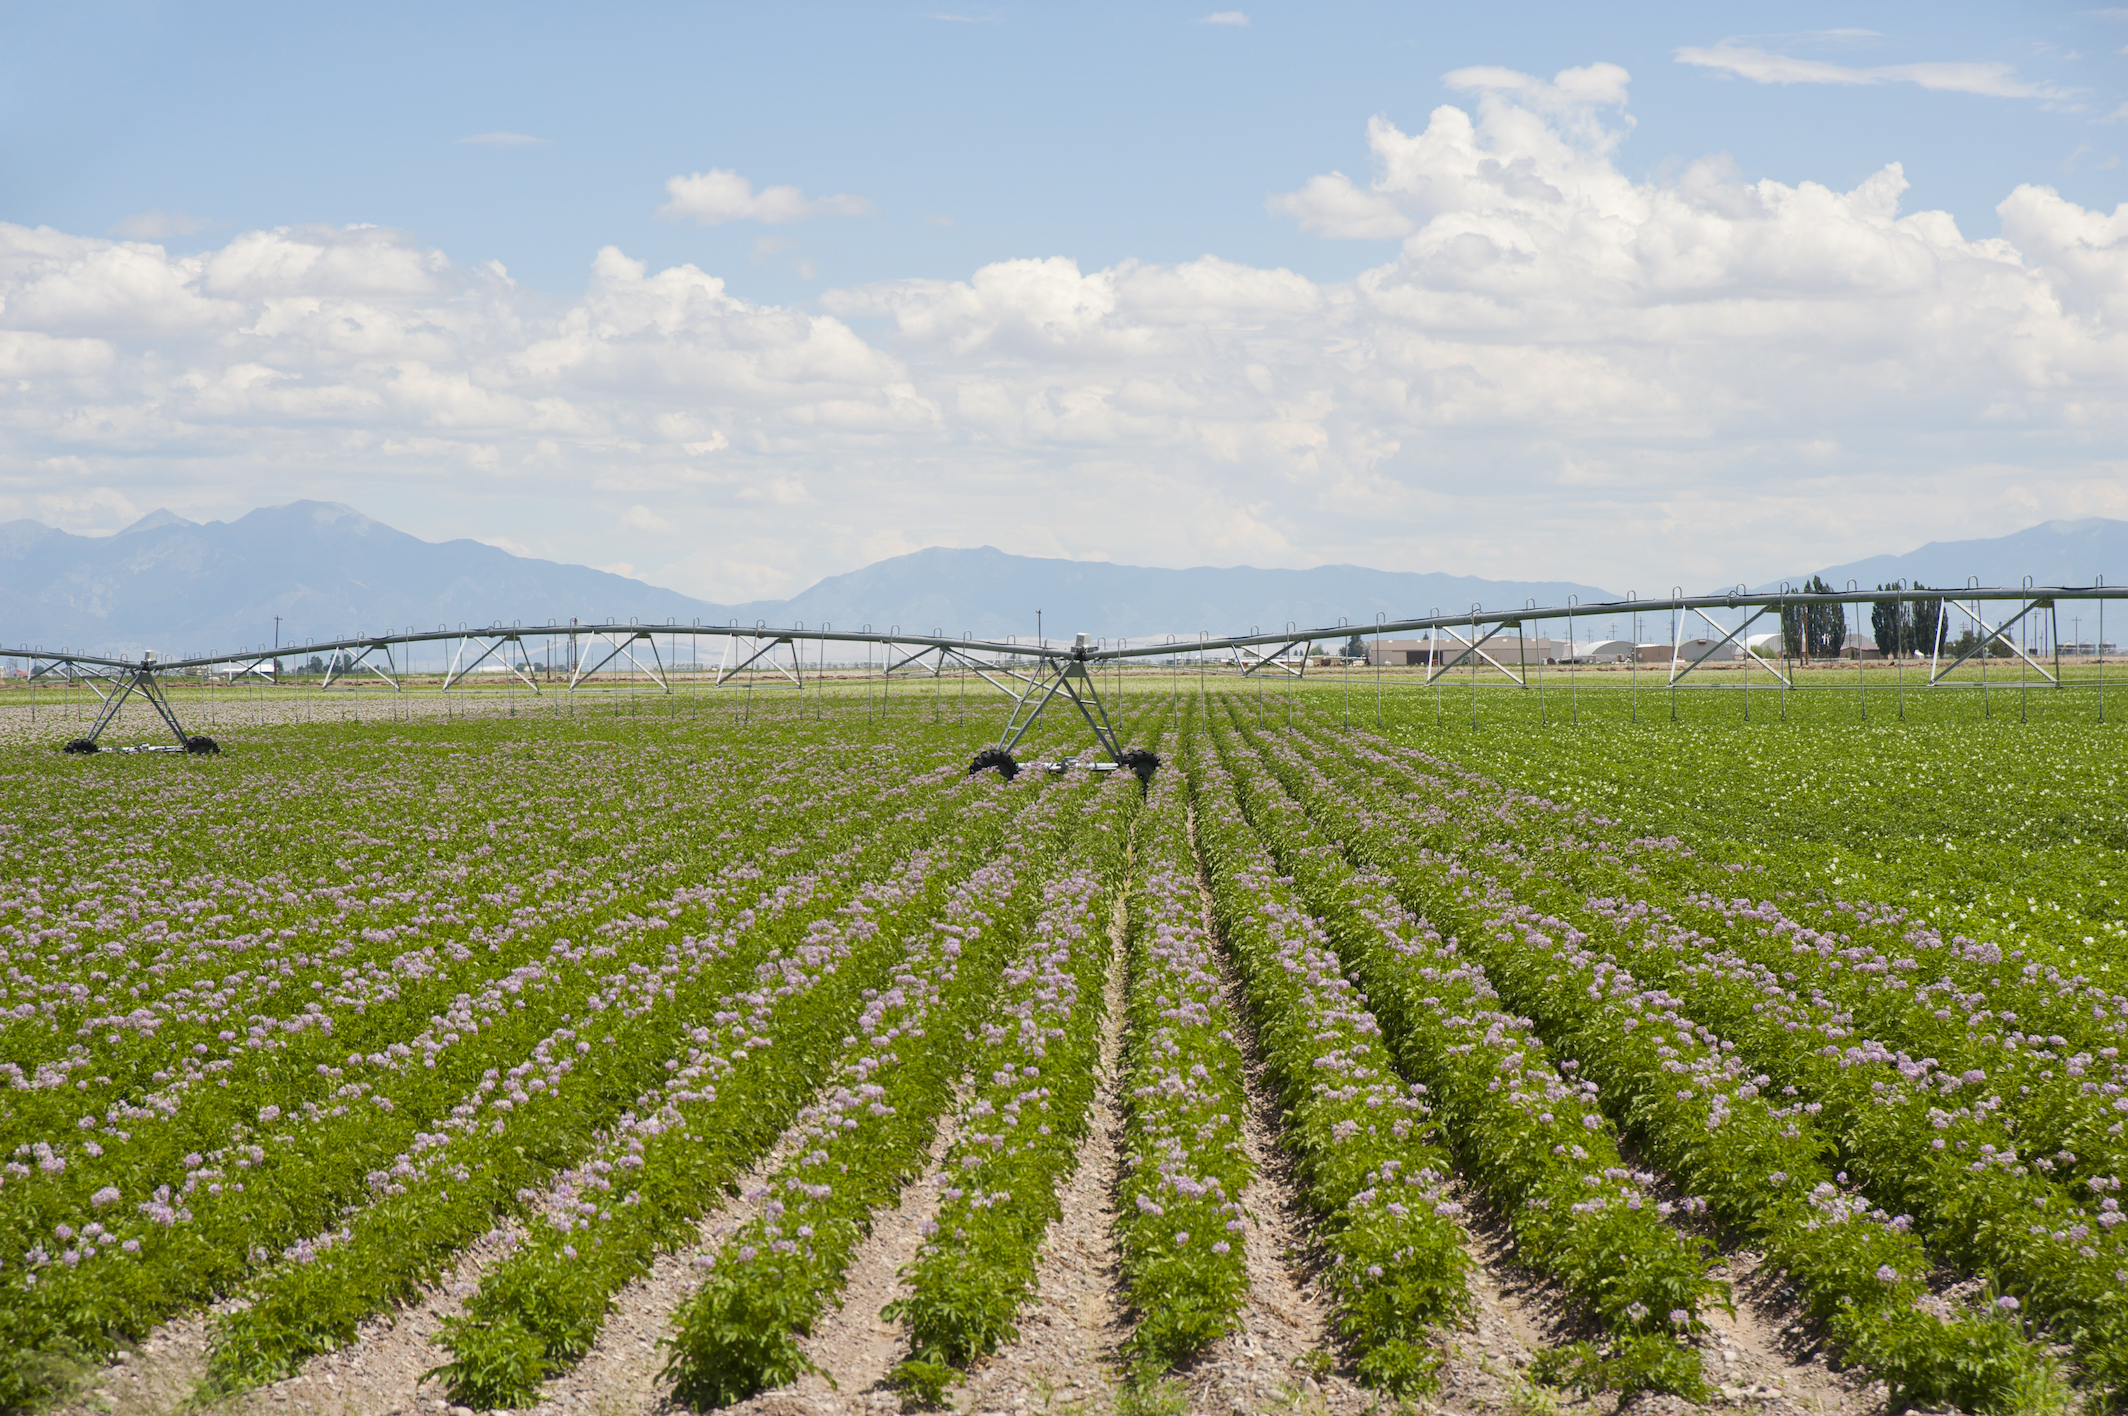 Irrigation equipment in field of potatoes